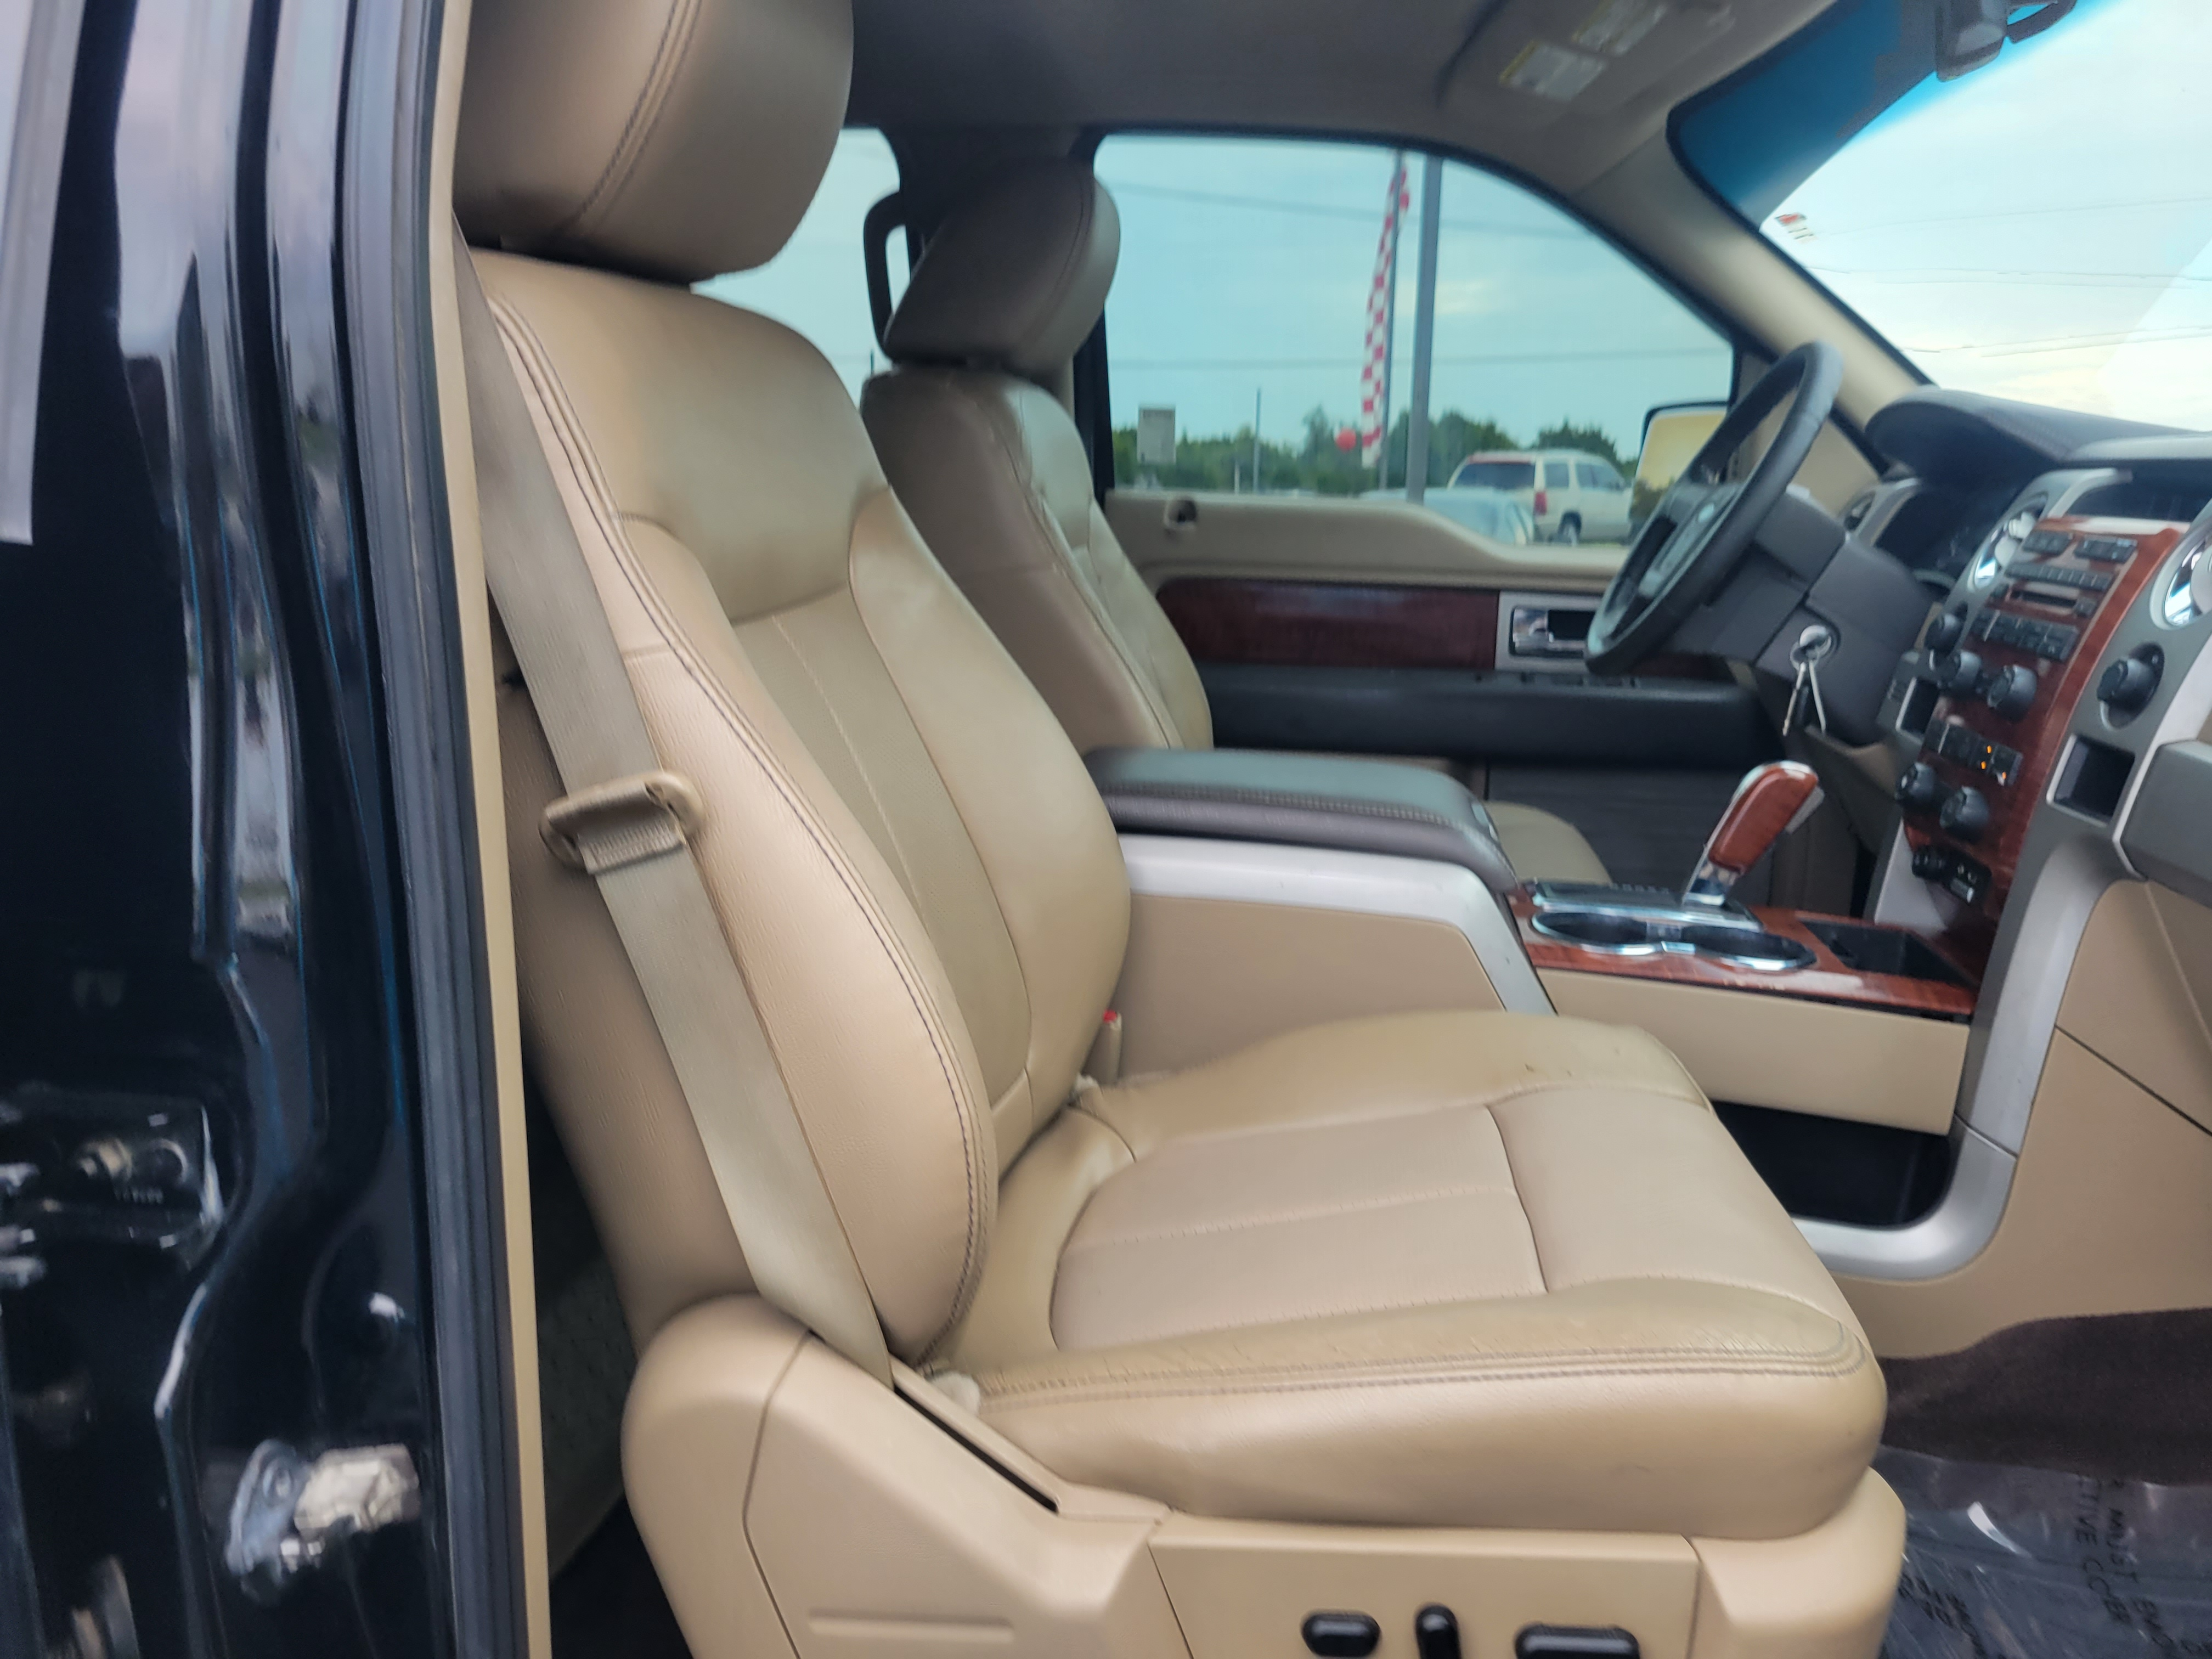 used vehicle - Truck FORD F-150 2009